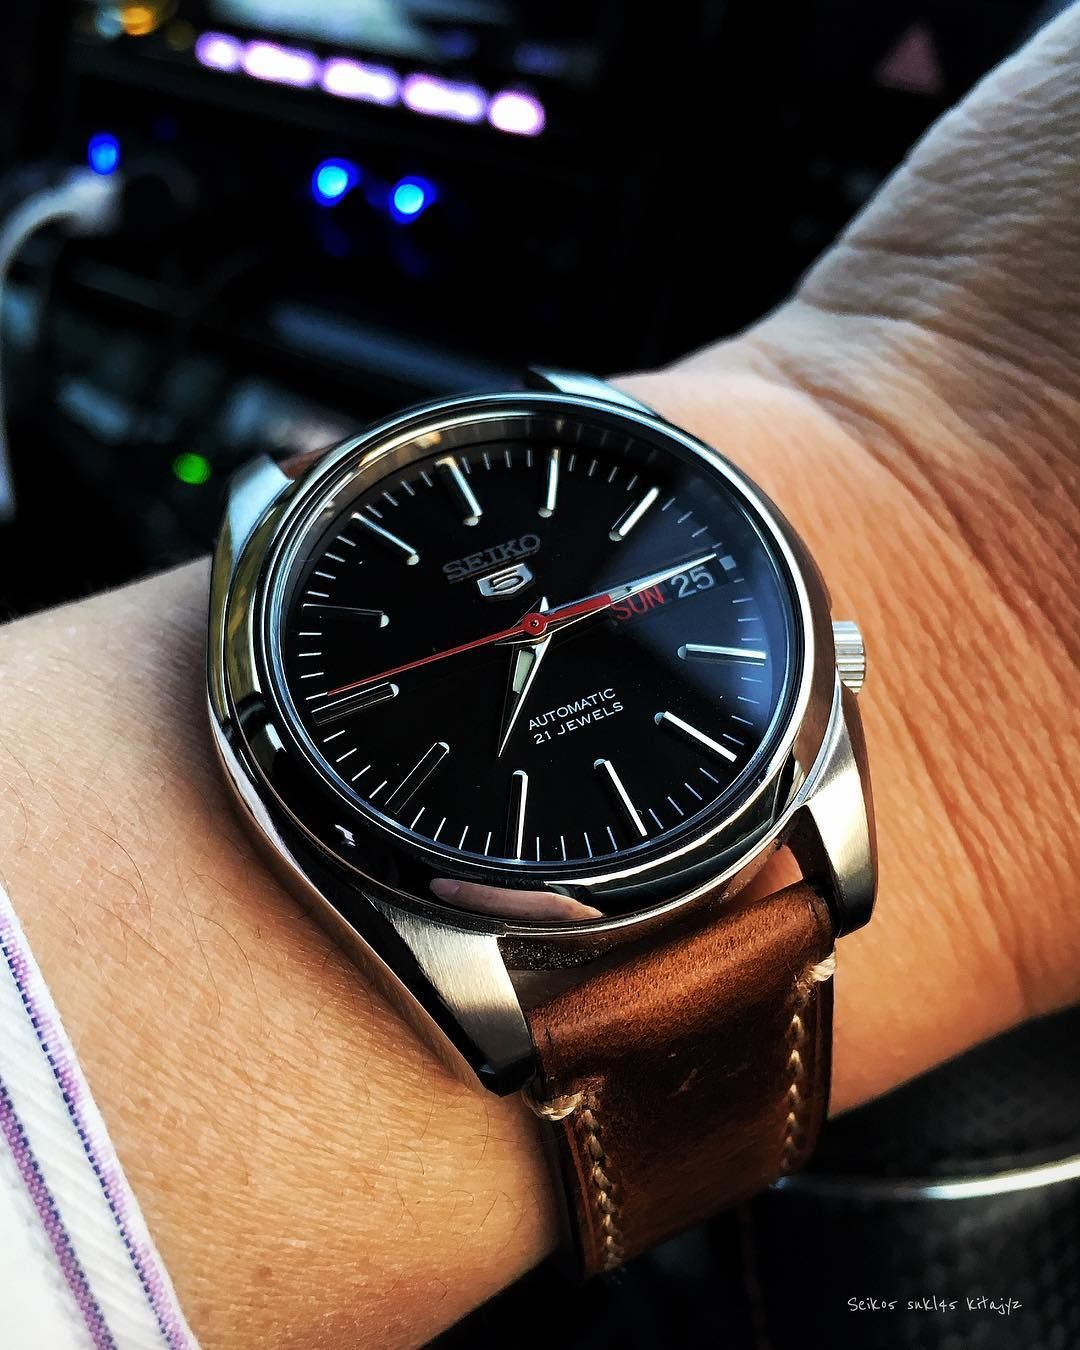 Seiko: 15 Best Seiko 5 Automatic Watches: Stylish and Affordable! Seiko 5 watches offer tremen...